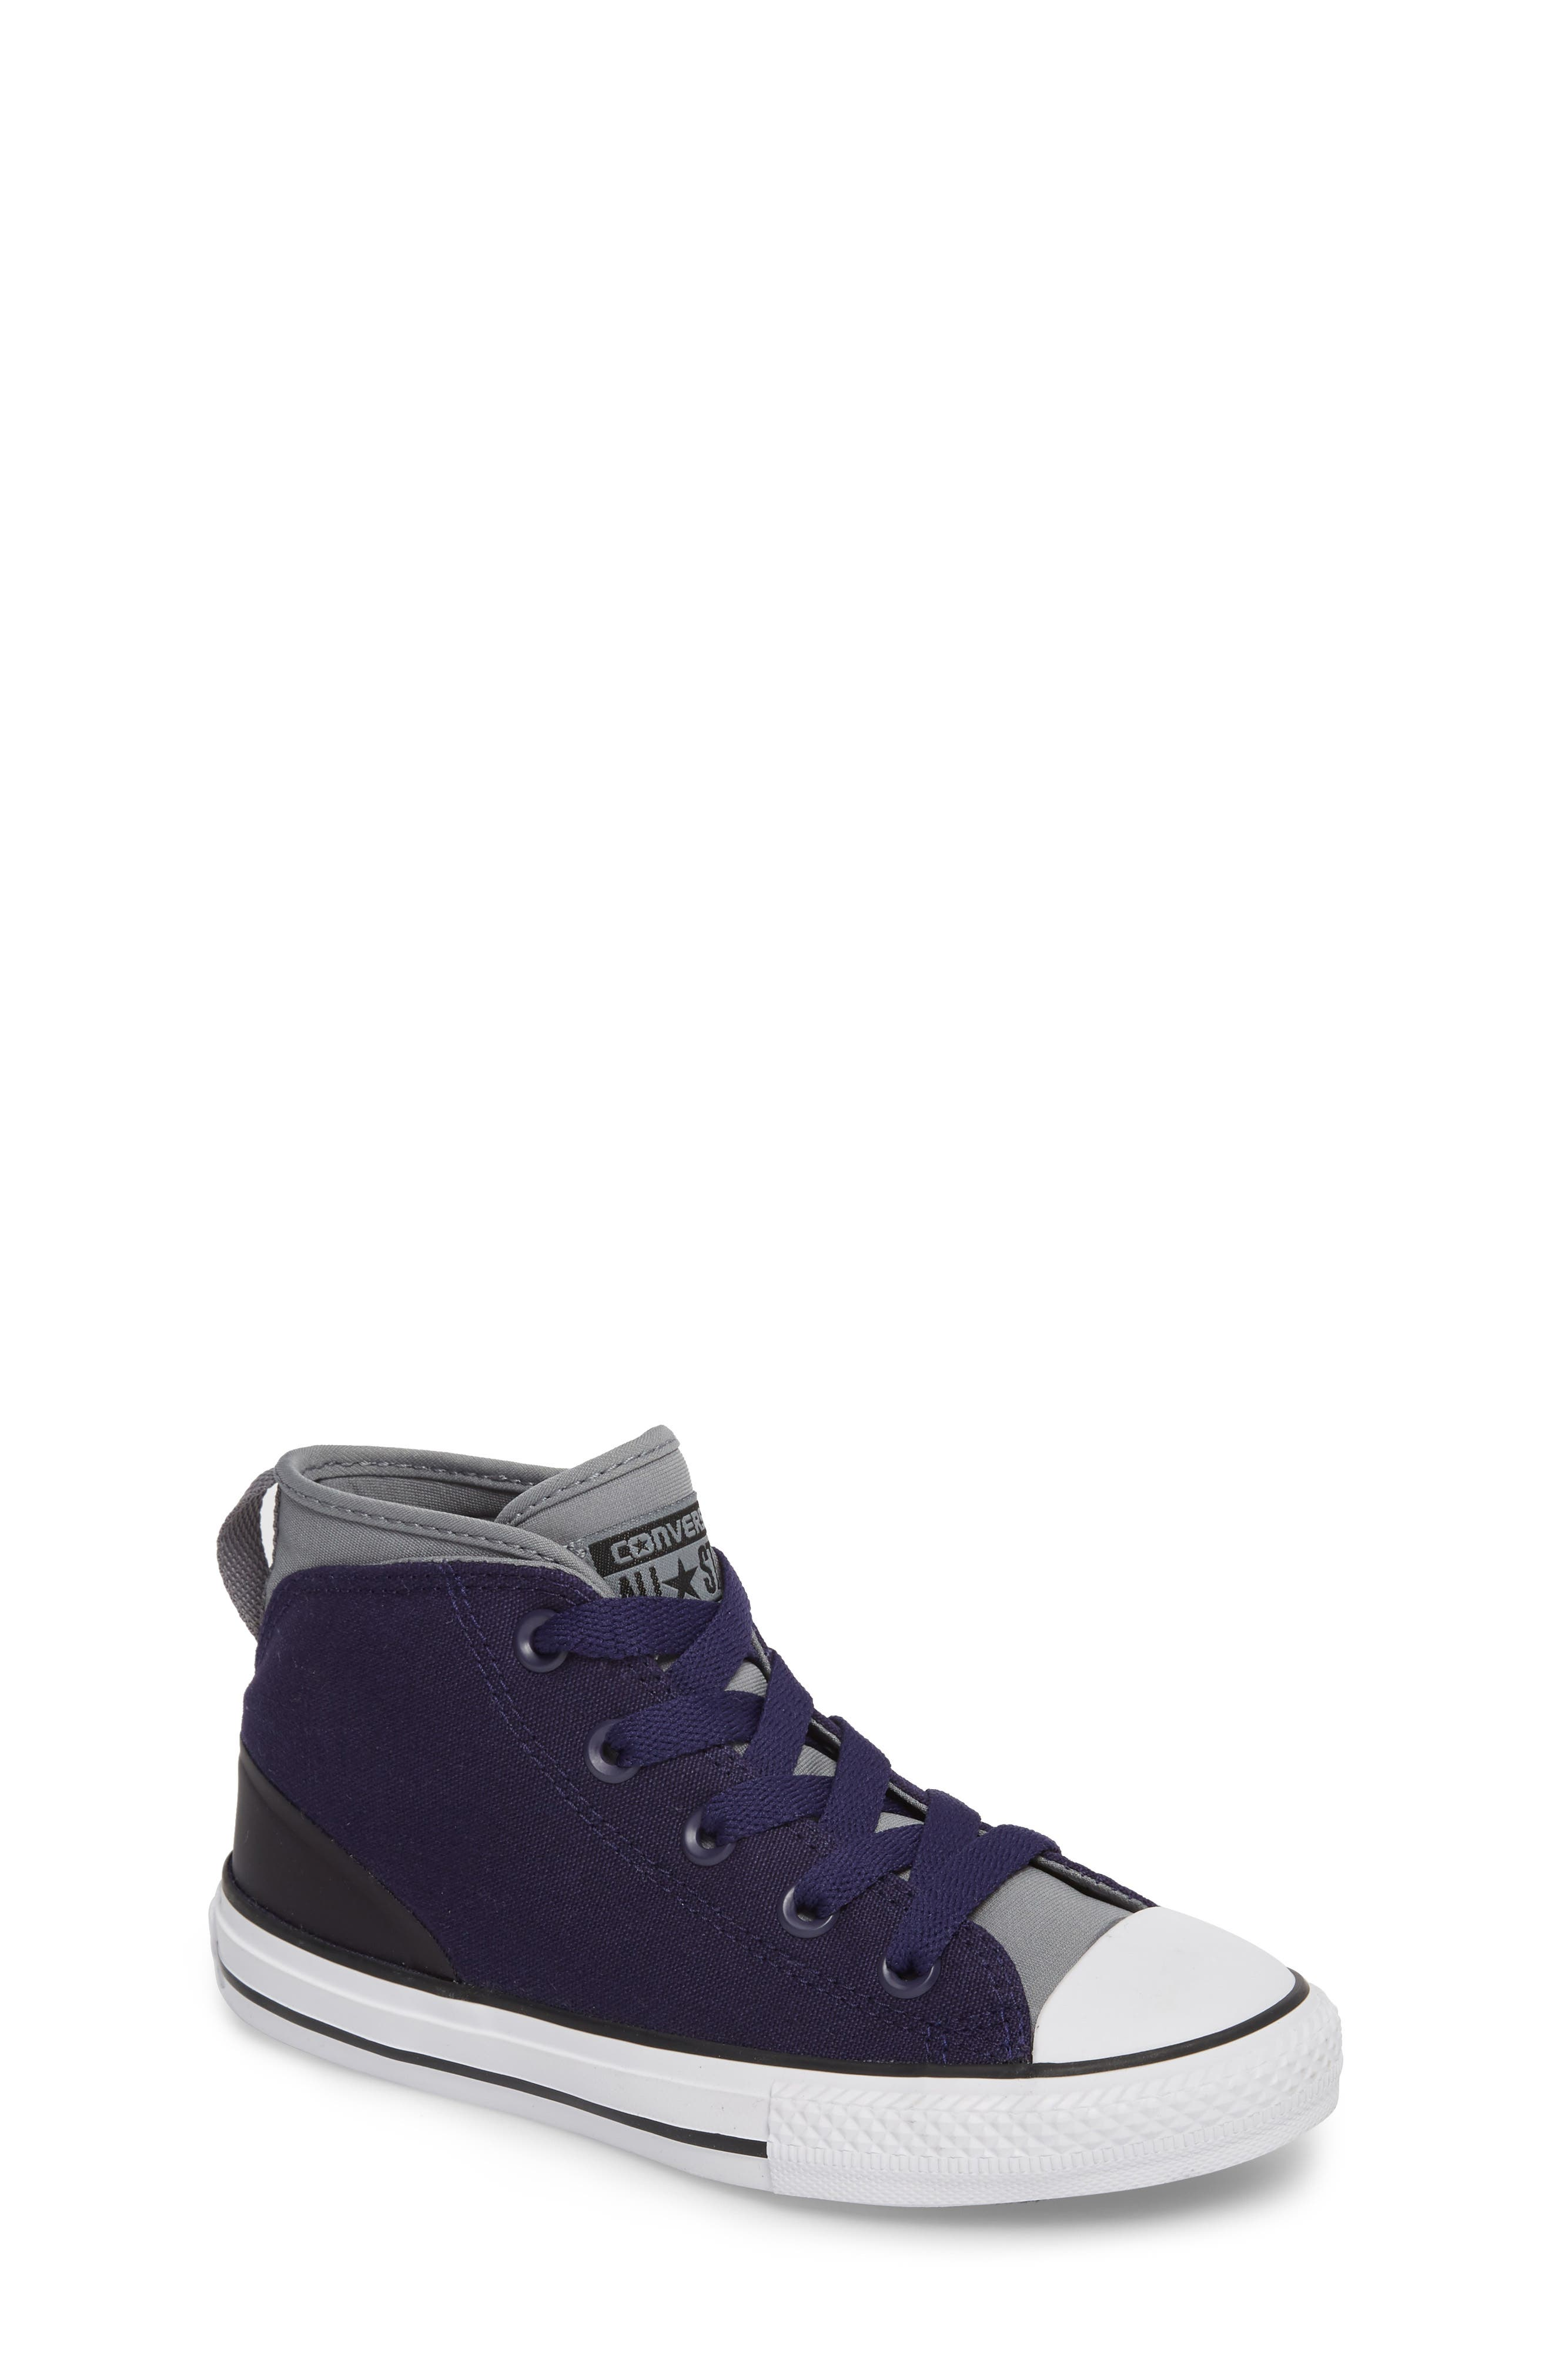 Chuck Taylor<sup>®</sup> All Star<sup>®</sup> Syde Street High Top Sneaker,                             Main thumbnail 1, color,                             Midnight Canvas